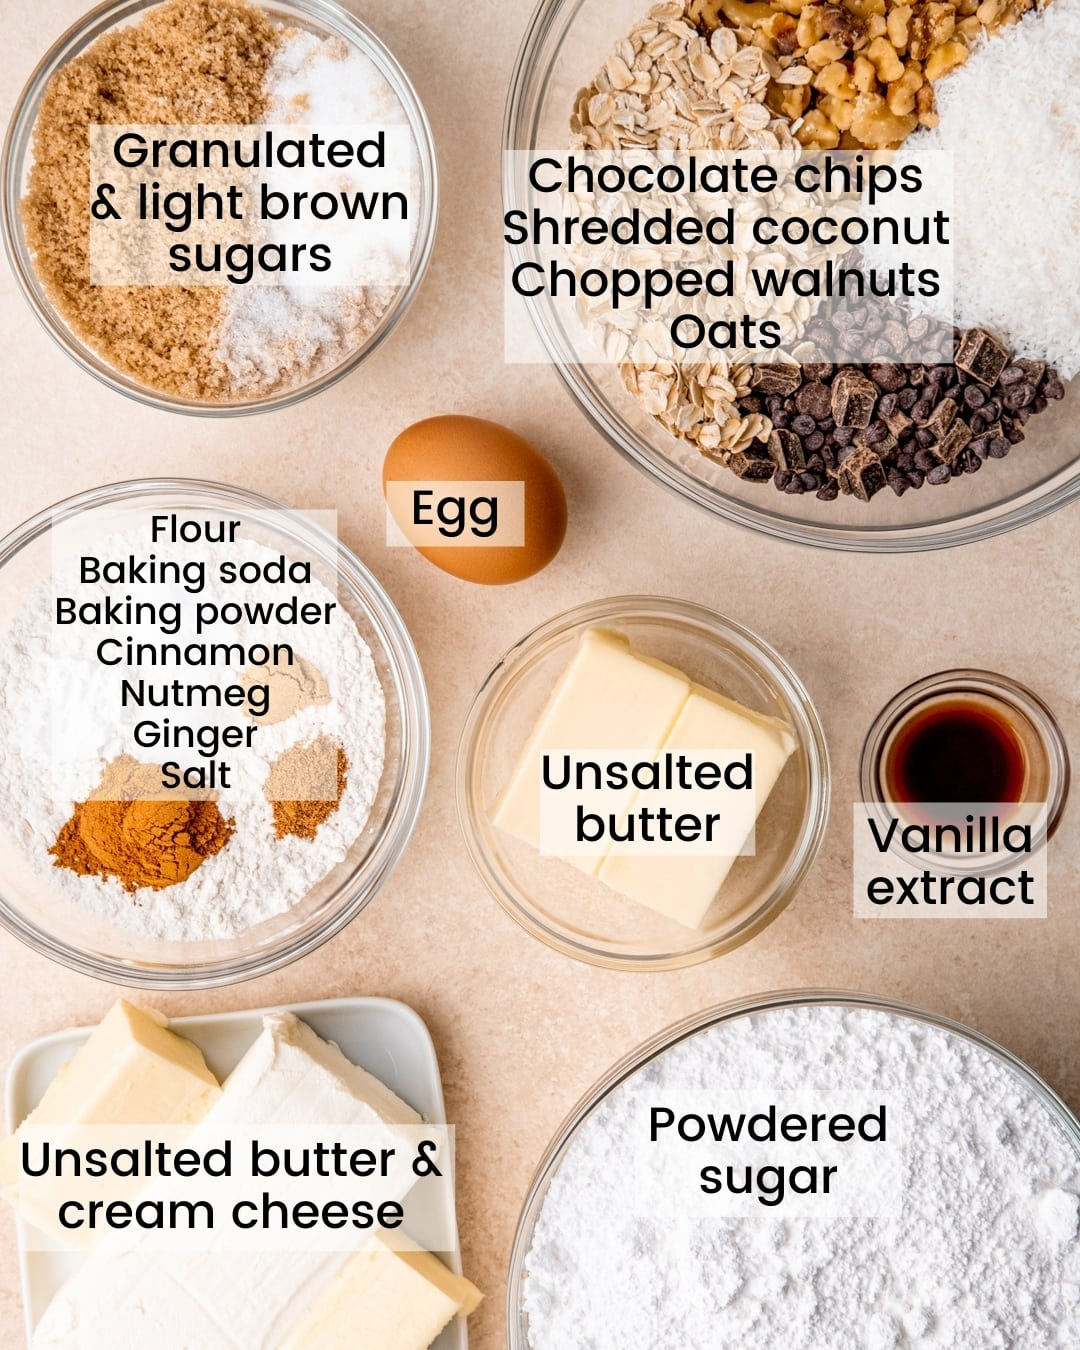 cowboy cookie cake ingredients laid out and labeled